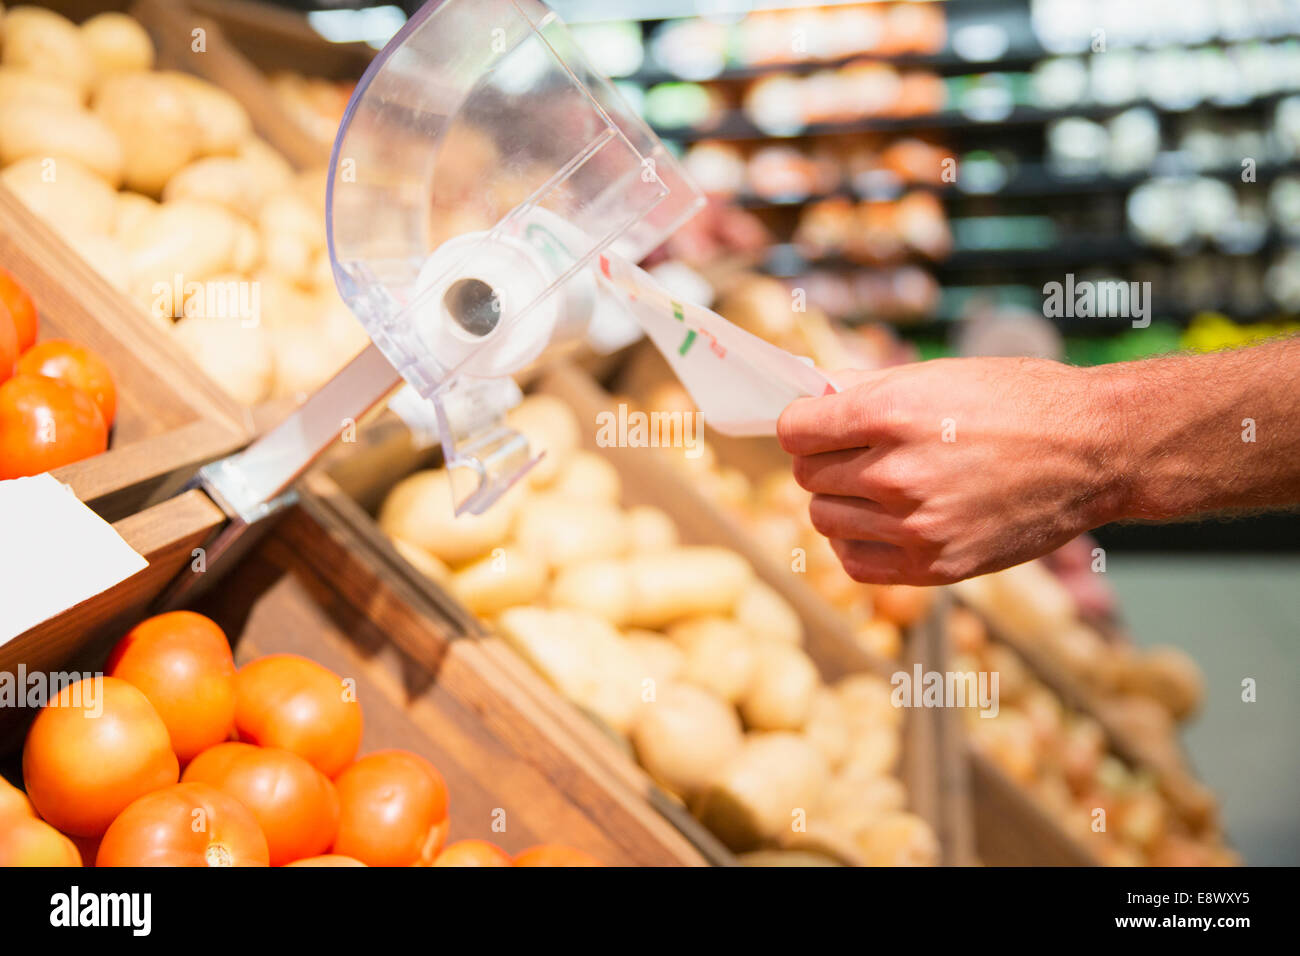 Close up of man taking plastic bag in produce section of grocery store - Stock Image